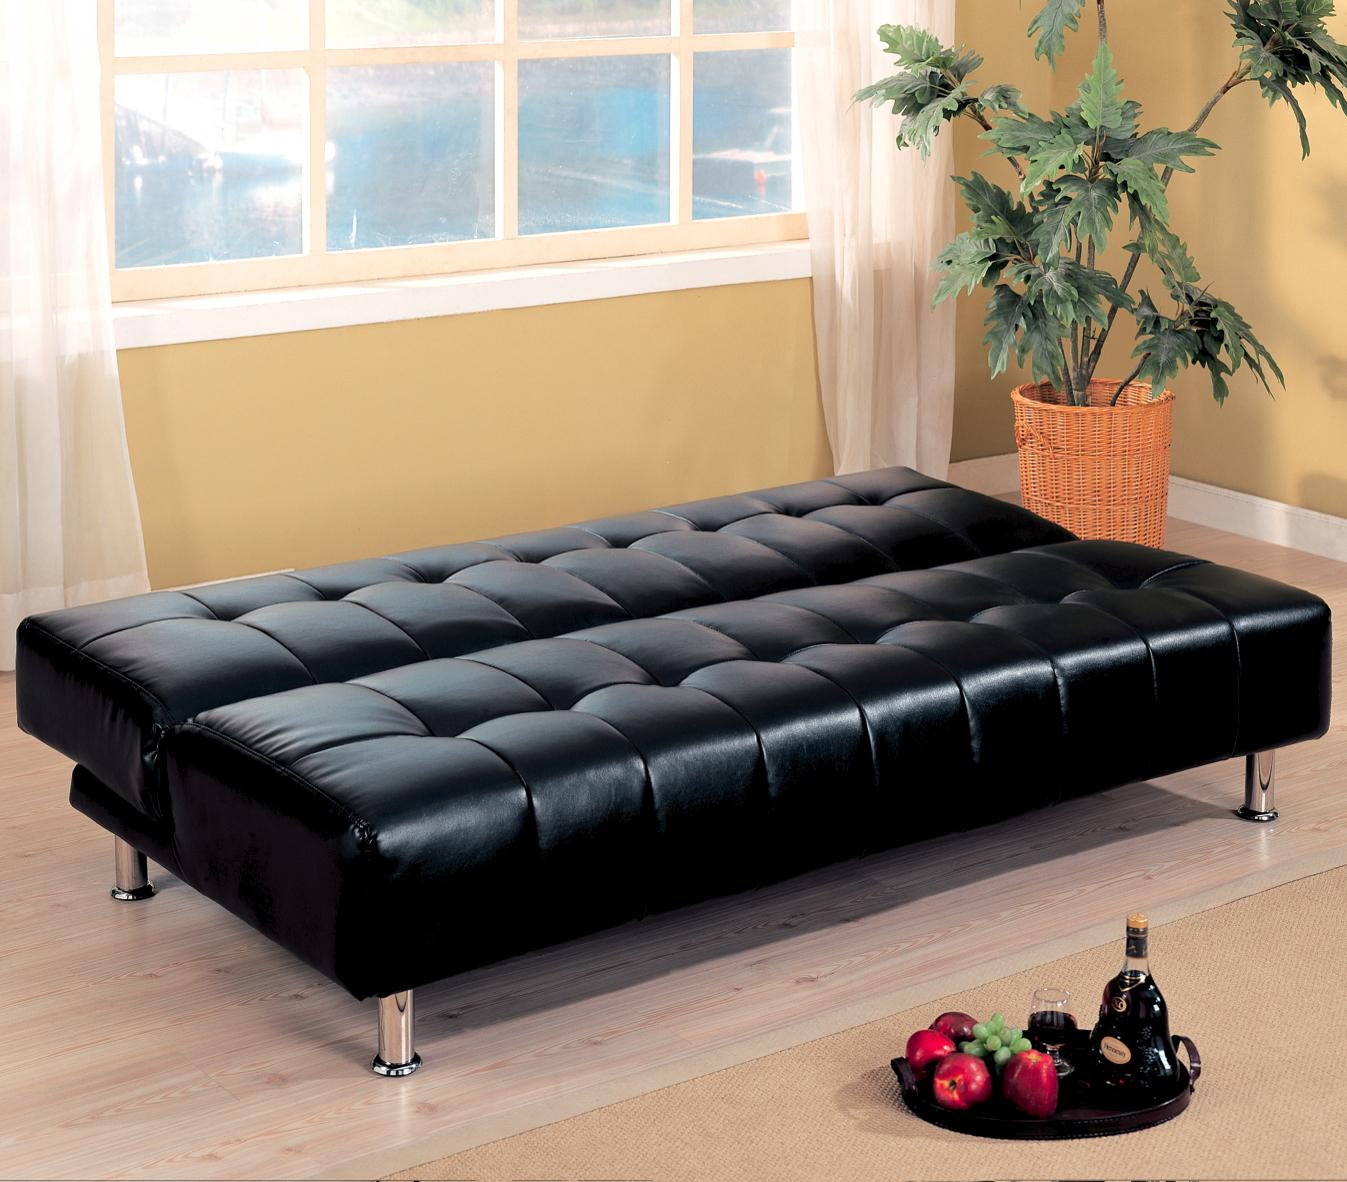 Black Faux Leather Armless Convertible Sofa down position